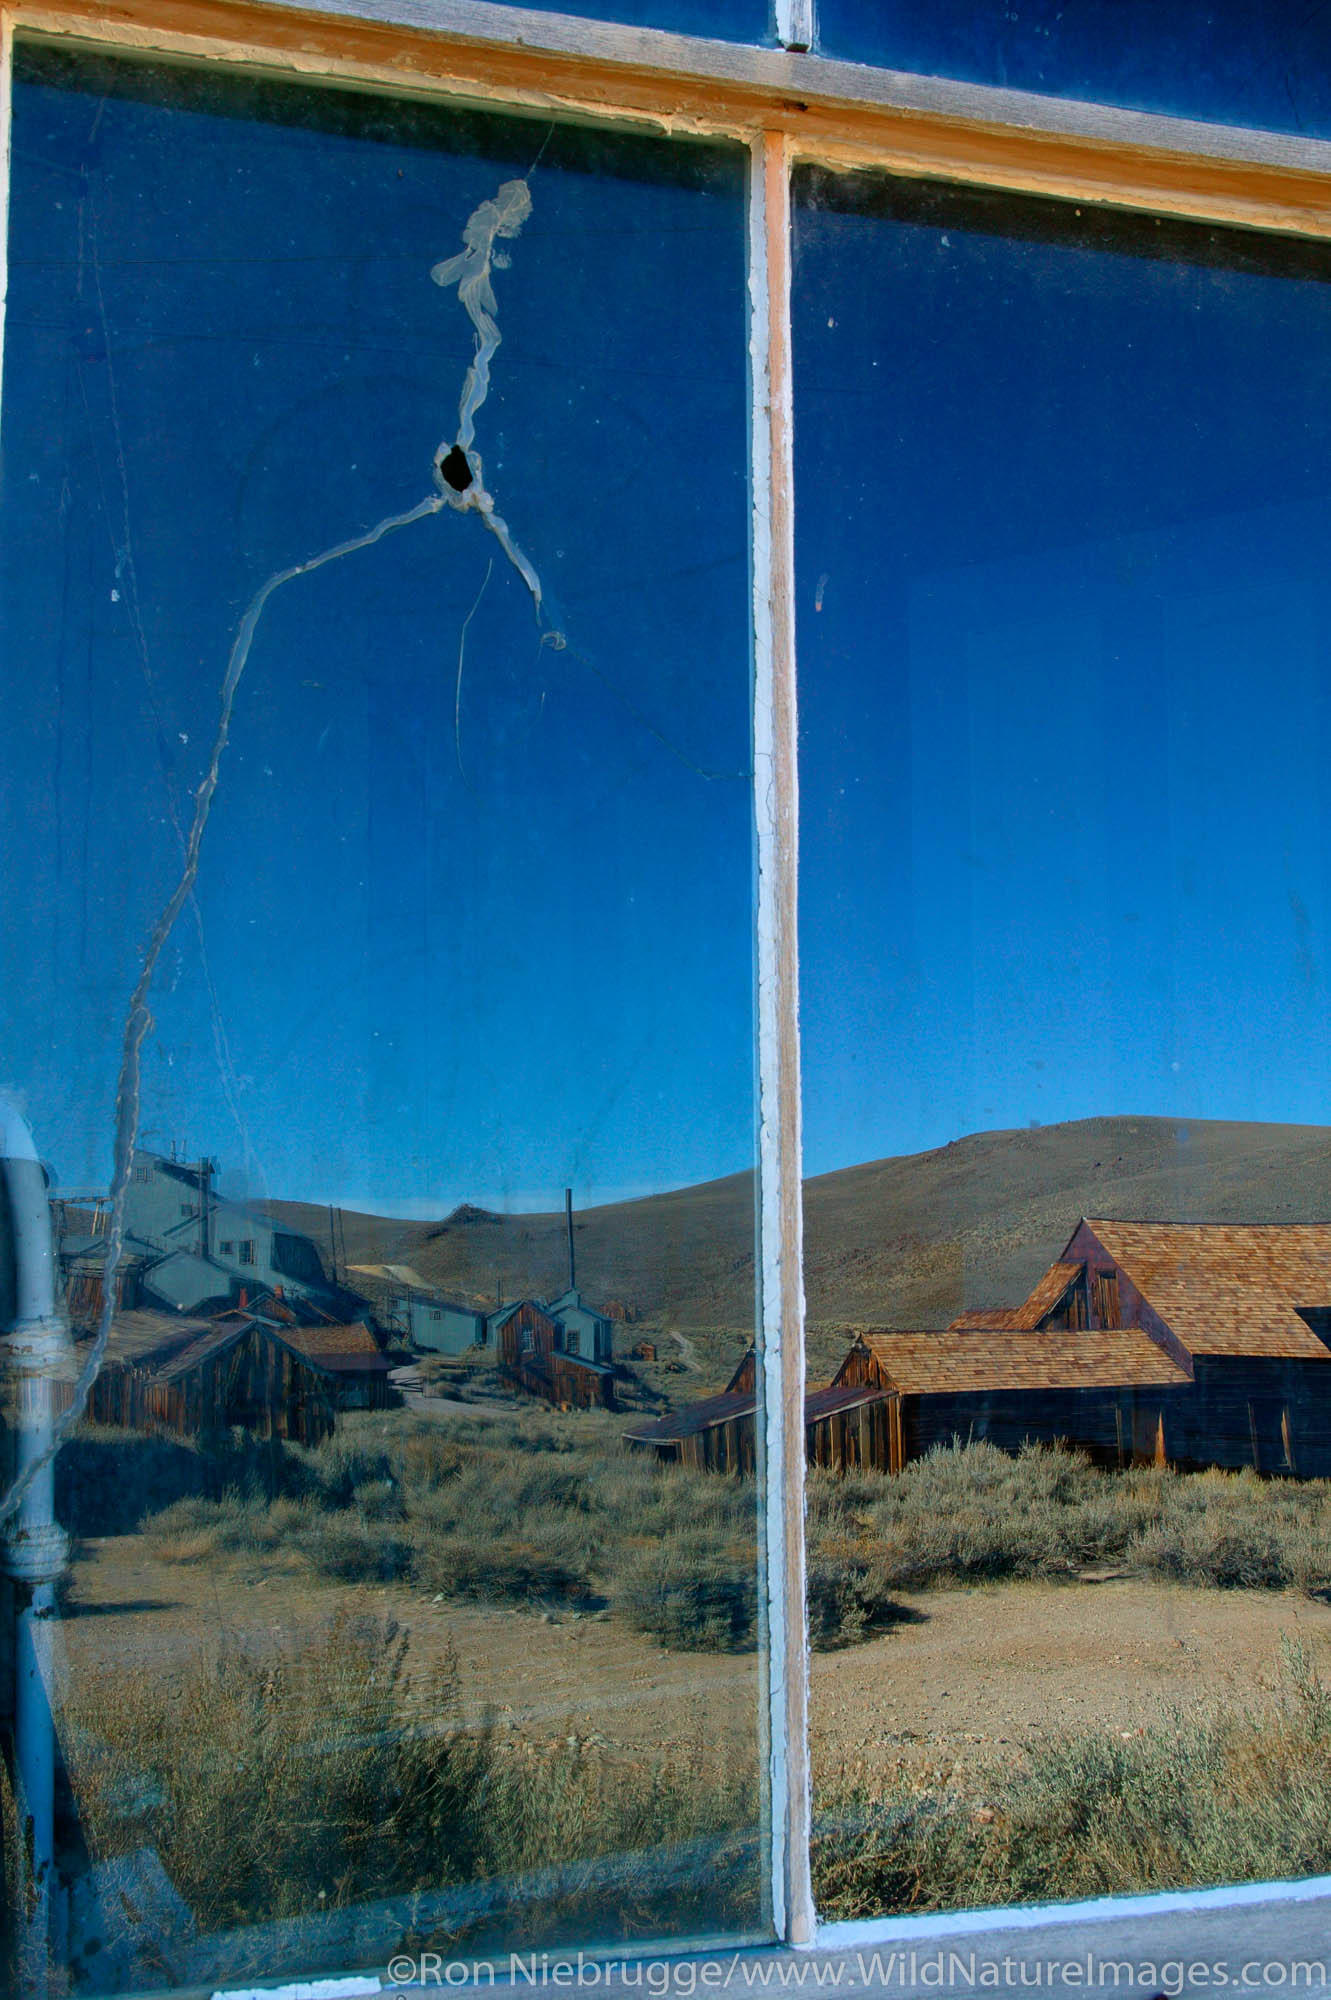 Reflections in the windows of one of the homes in the historic ghost town of Bodie.  Bodie was once bustling gold mining town...